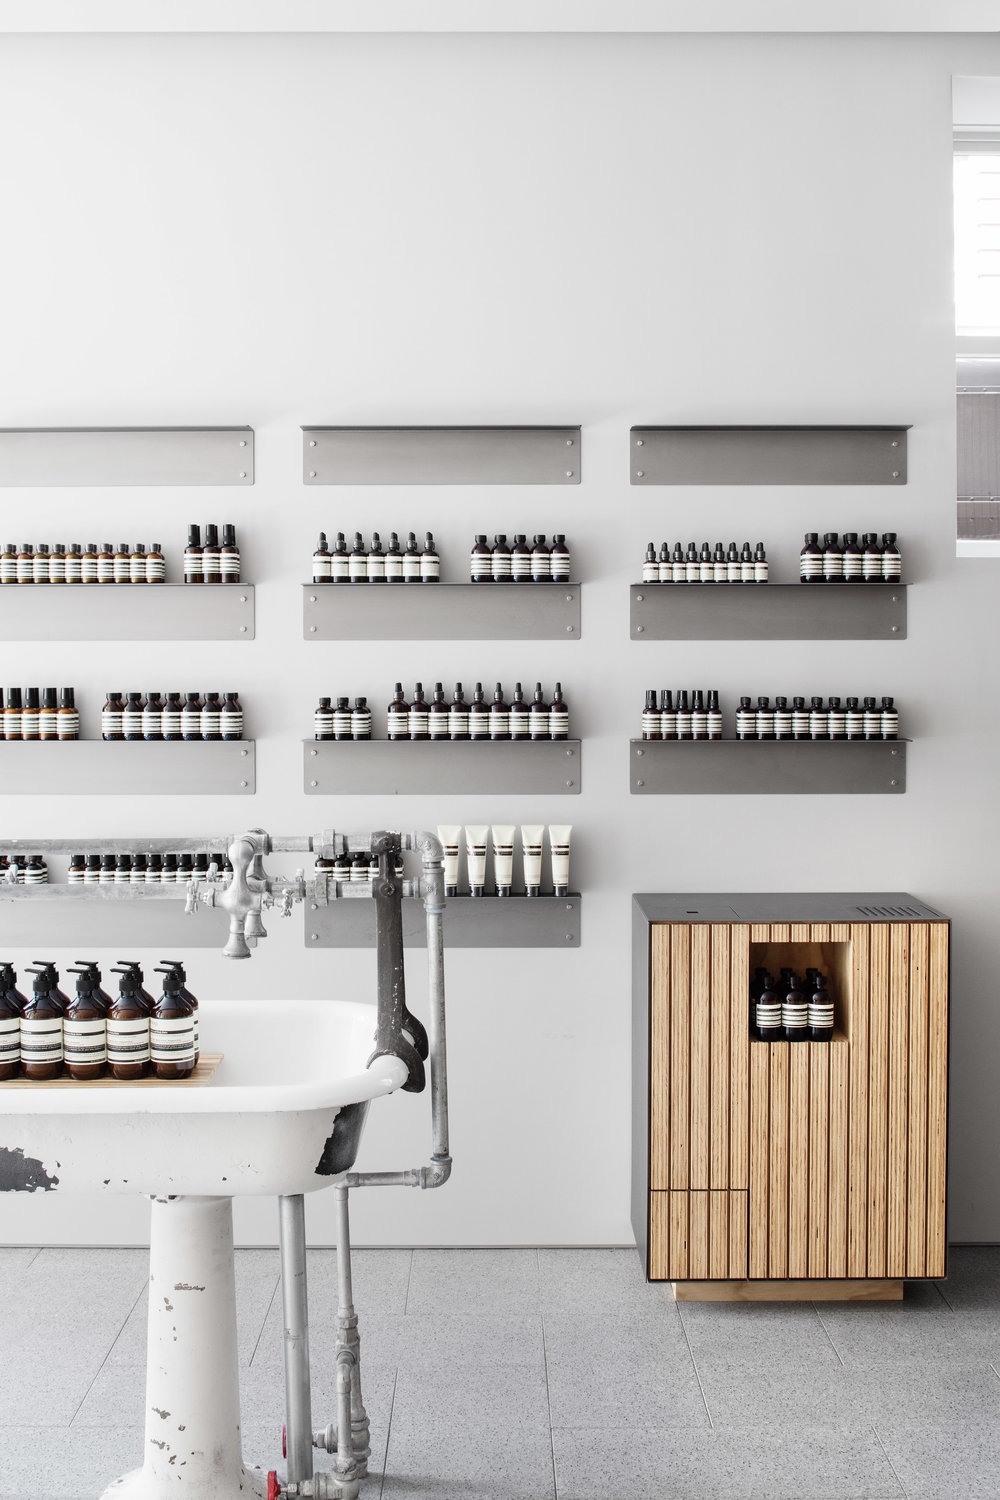 aesop-uws-tacklebox-architecture-interiors-retail_dezeen_2364_col_4.jpg